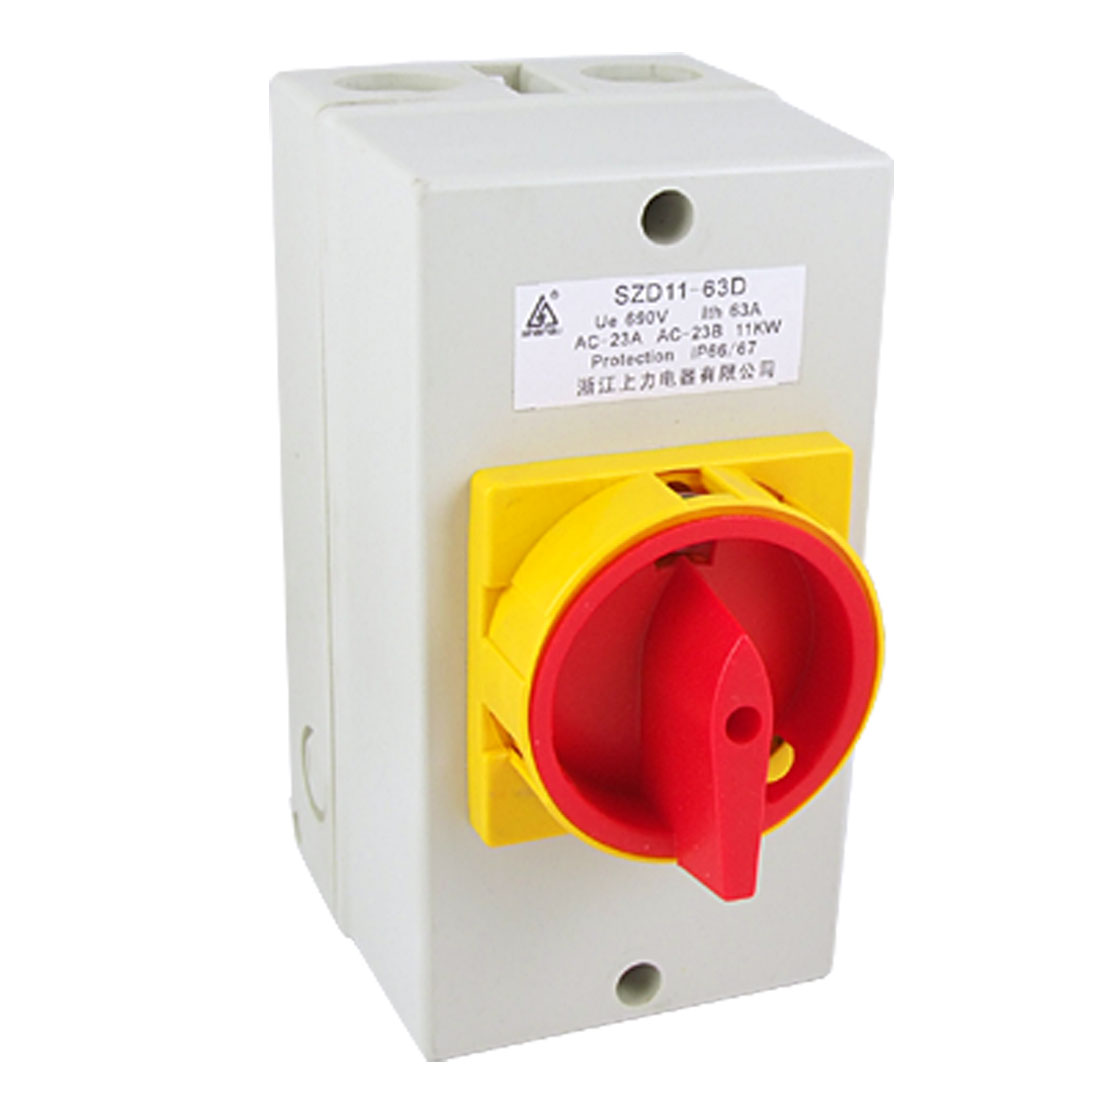 Rotary Cam Ue 690V Ith 63A On/Off Changeover Switch